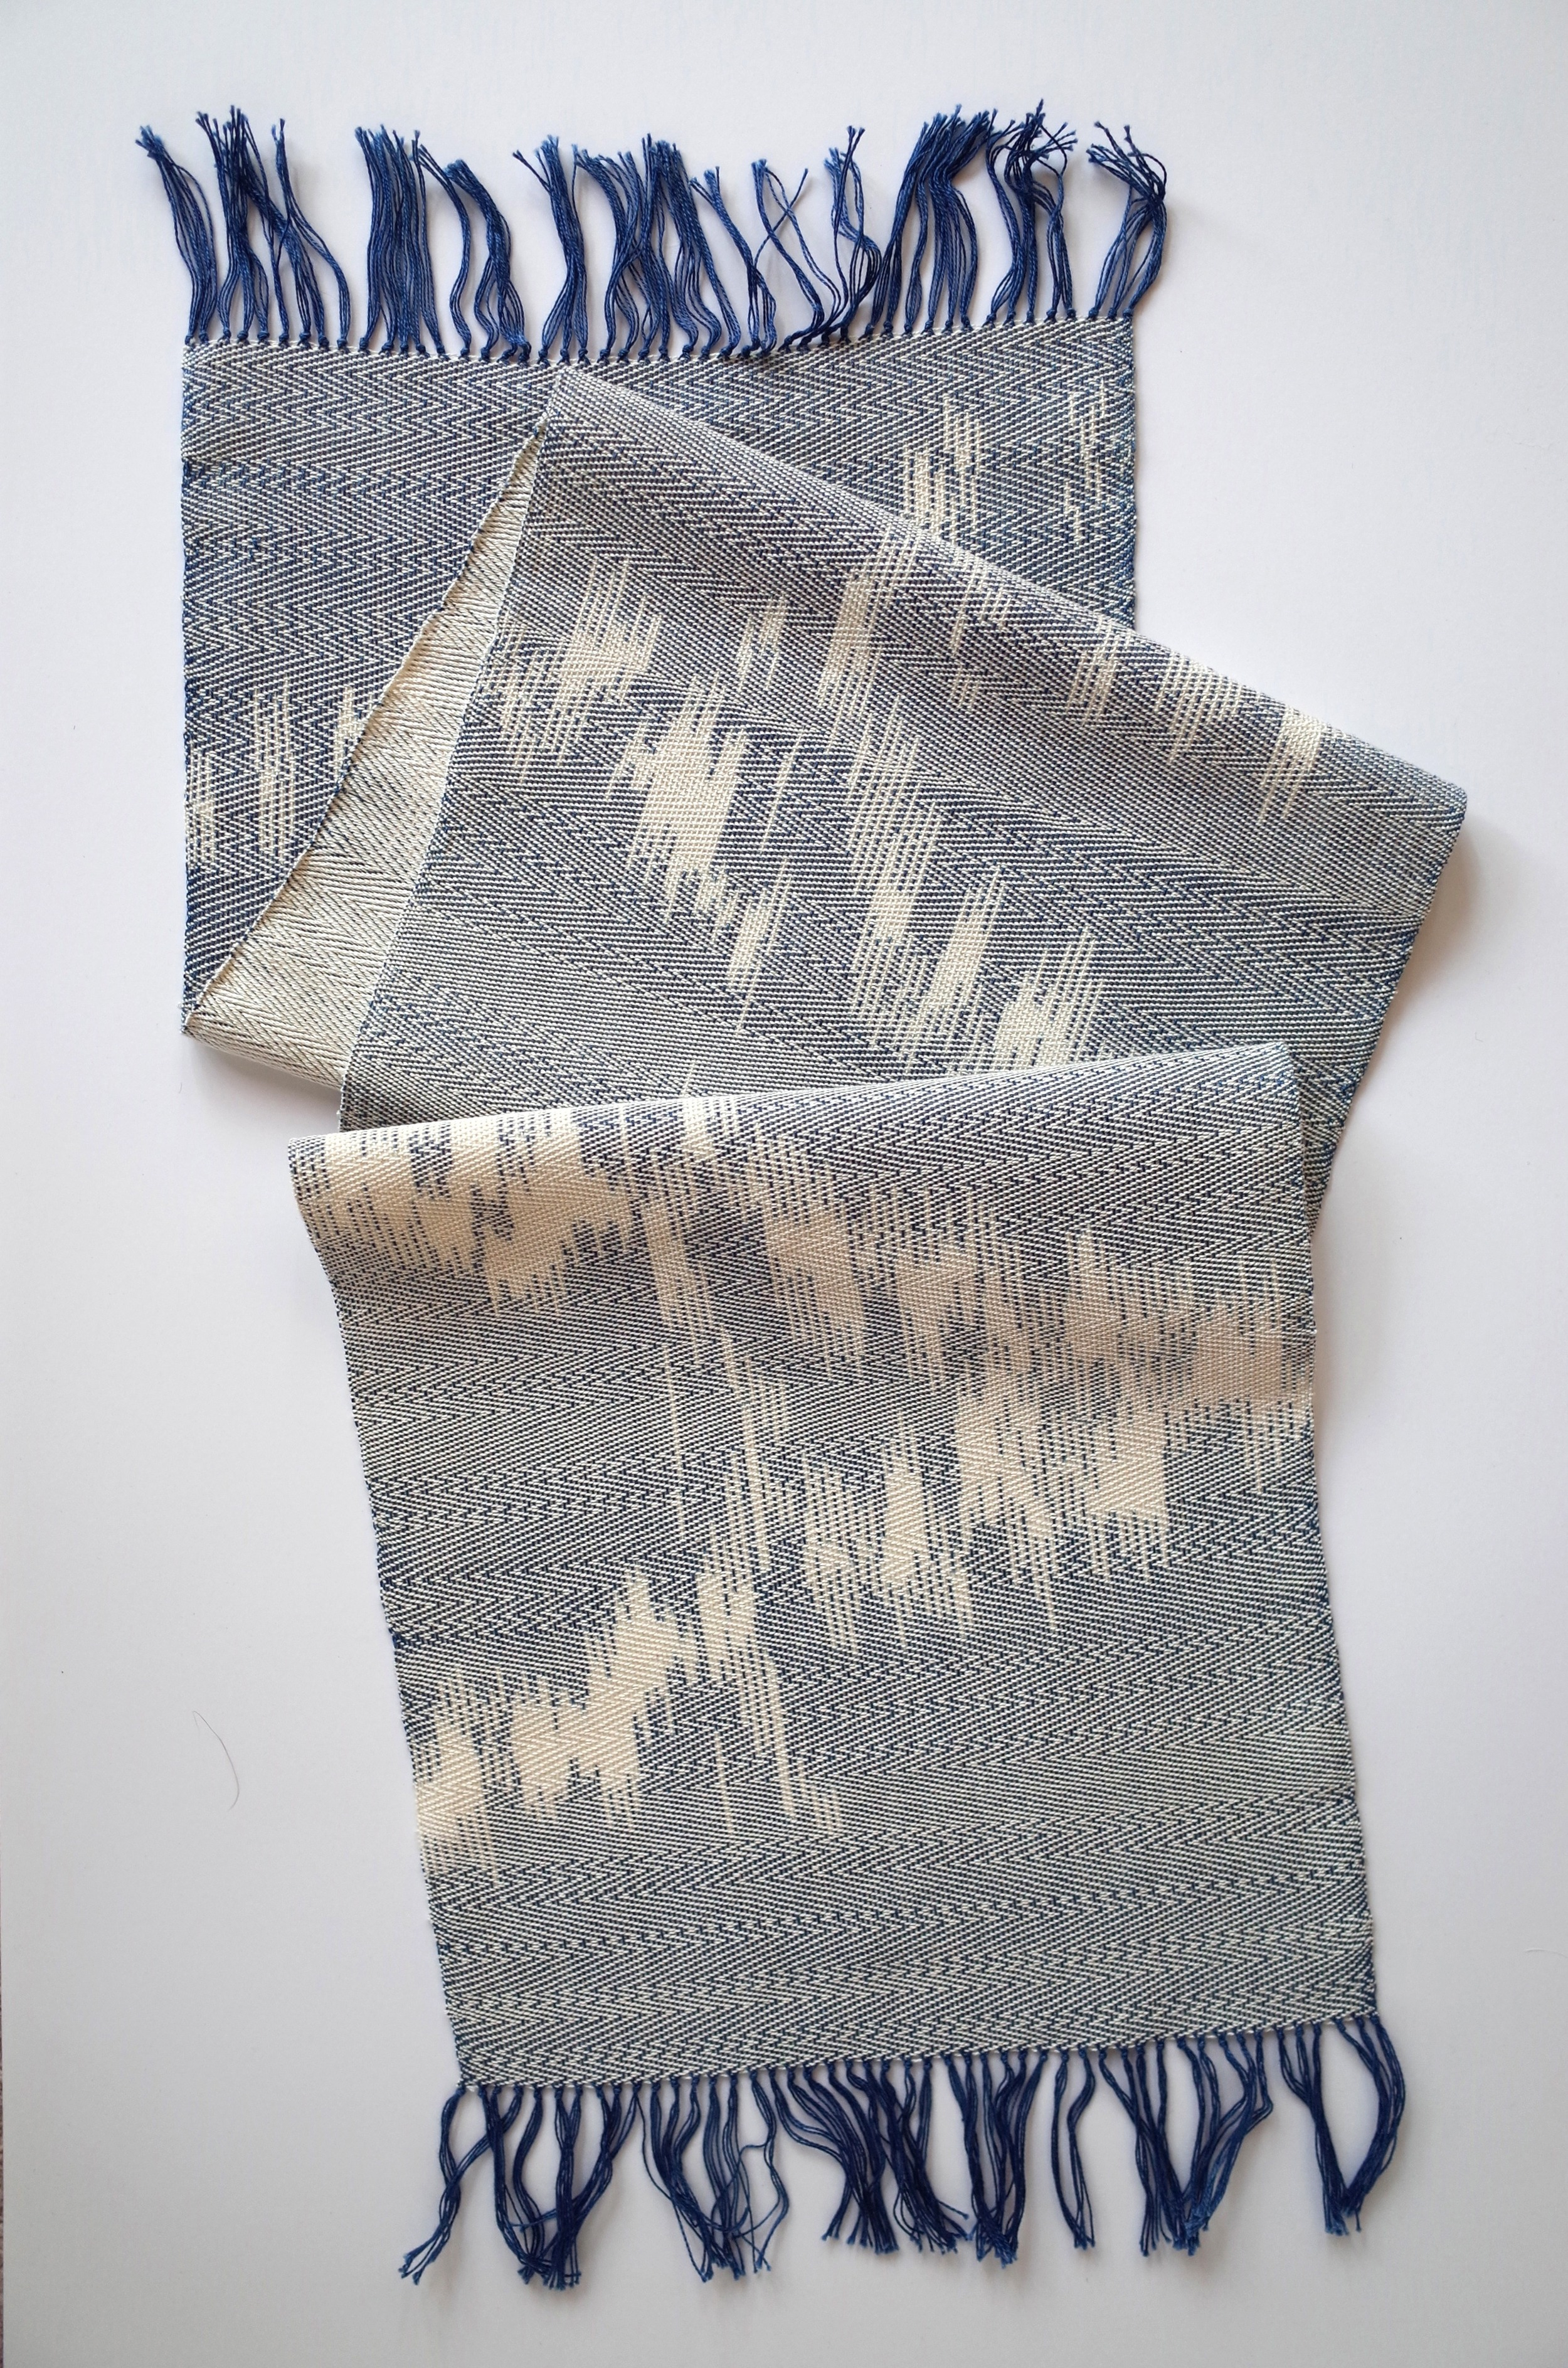 Finished piece: Back and Forth Fade, Ikat, Cotton dyed with Indigo, 2014.